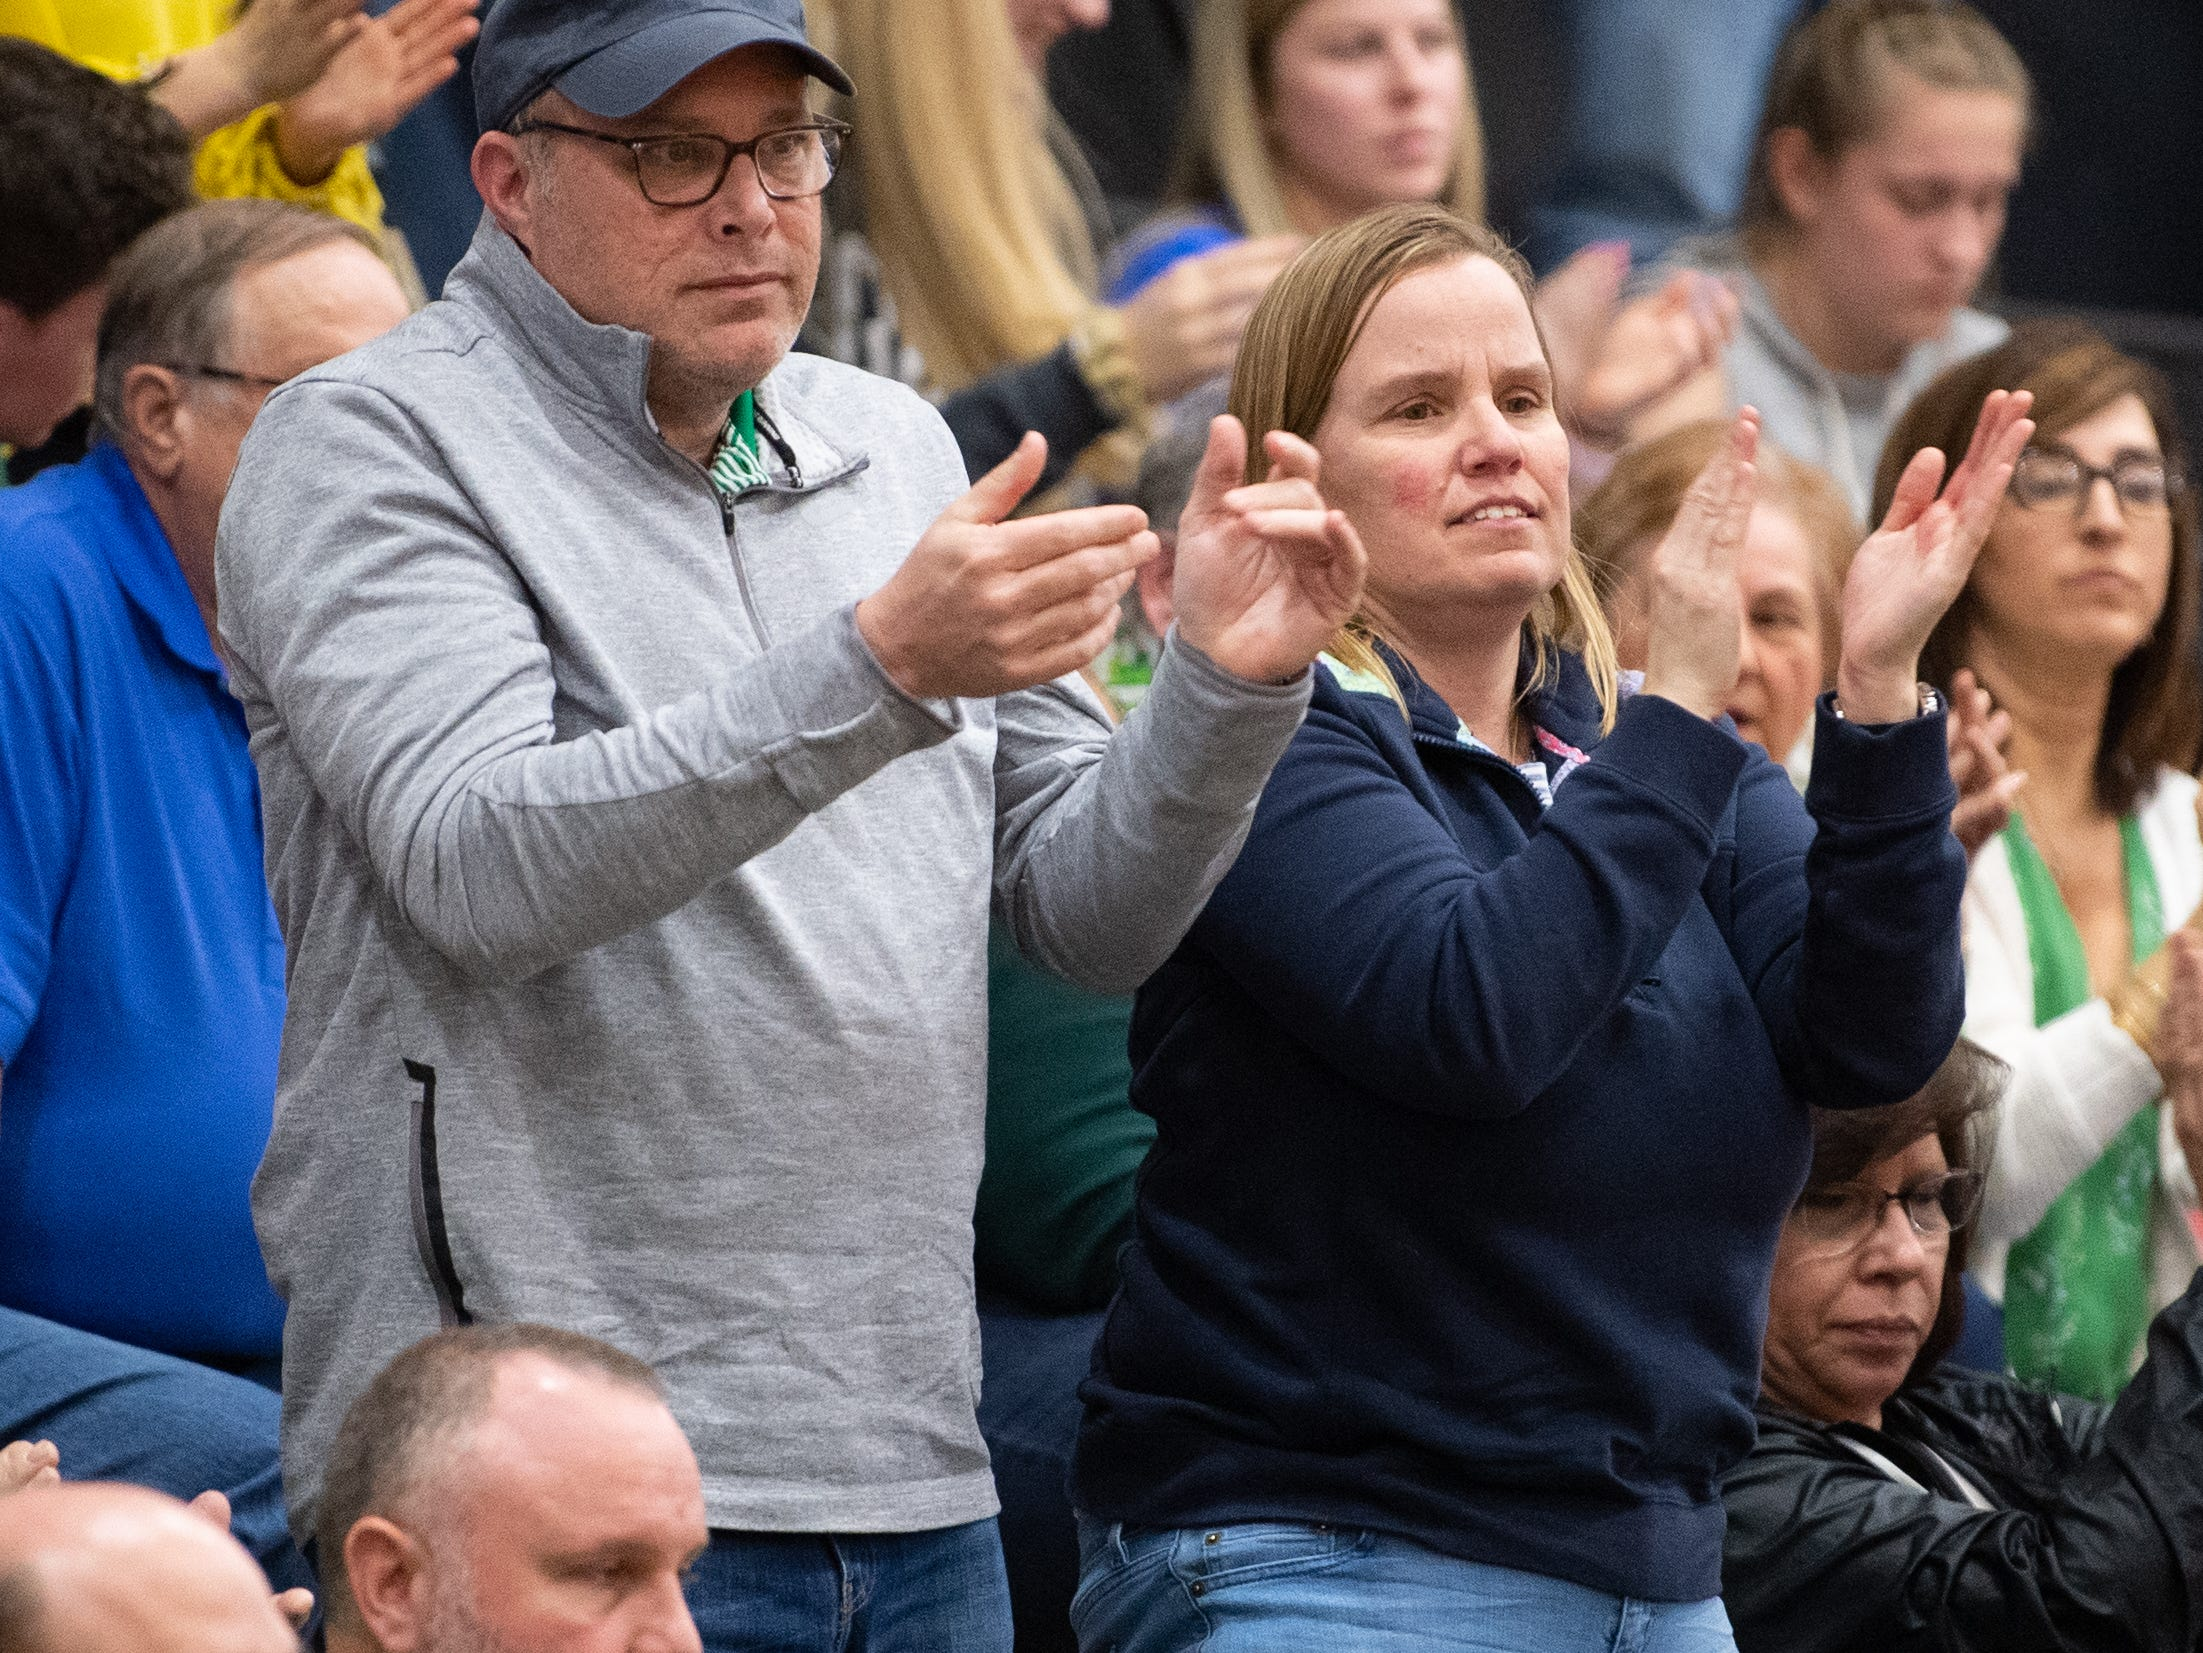 York Catholic fans applaud their team after a hard fought game against Bellwood-Antis in the PIAA girls' basketball game, March 15, 2019 at Mifflin County High School. The Fighting Irish lost to the Lady Blue Devils 53 to 47.